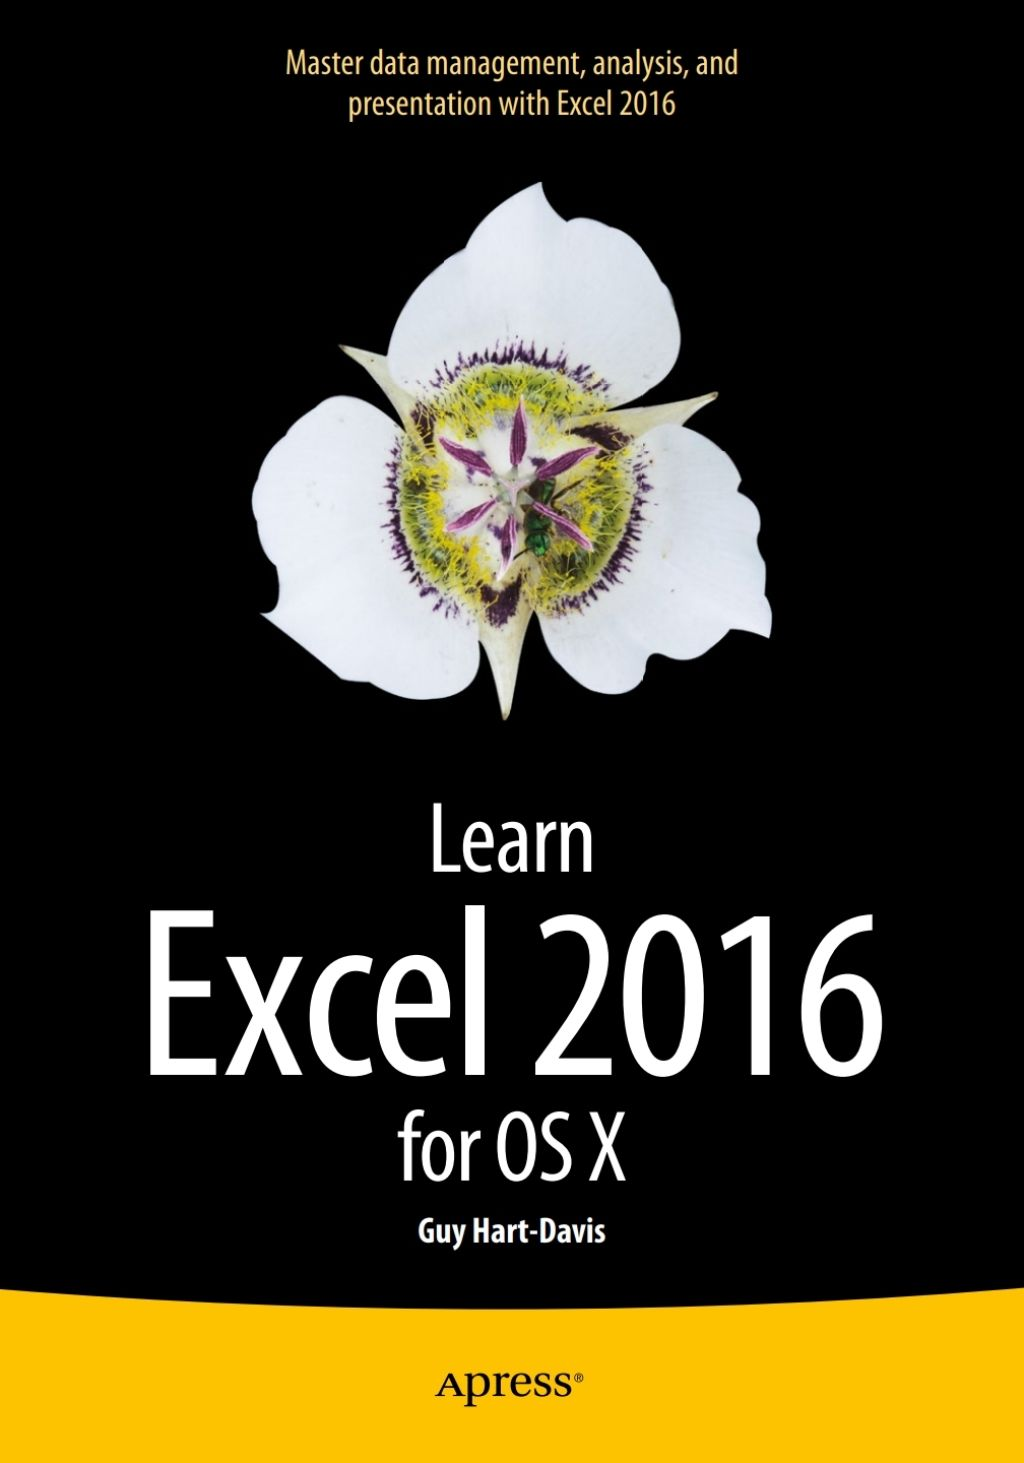 Learn Excel 2016 for OS X (eBook) | Products | Learning, Pdf